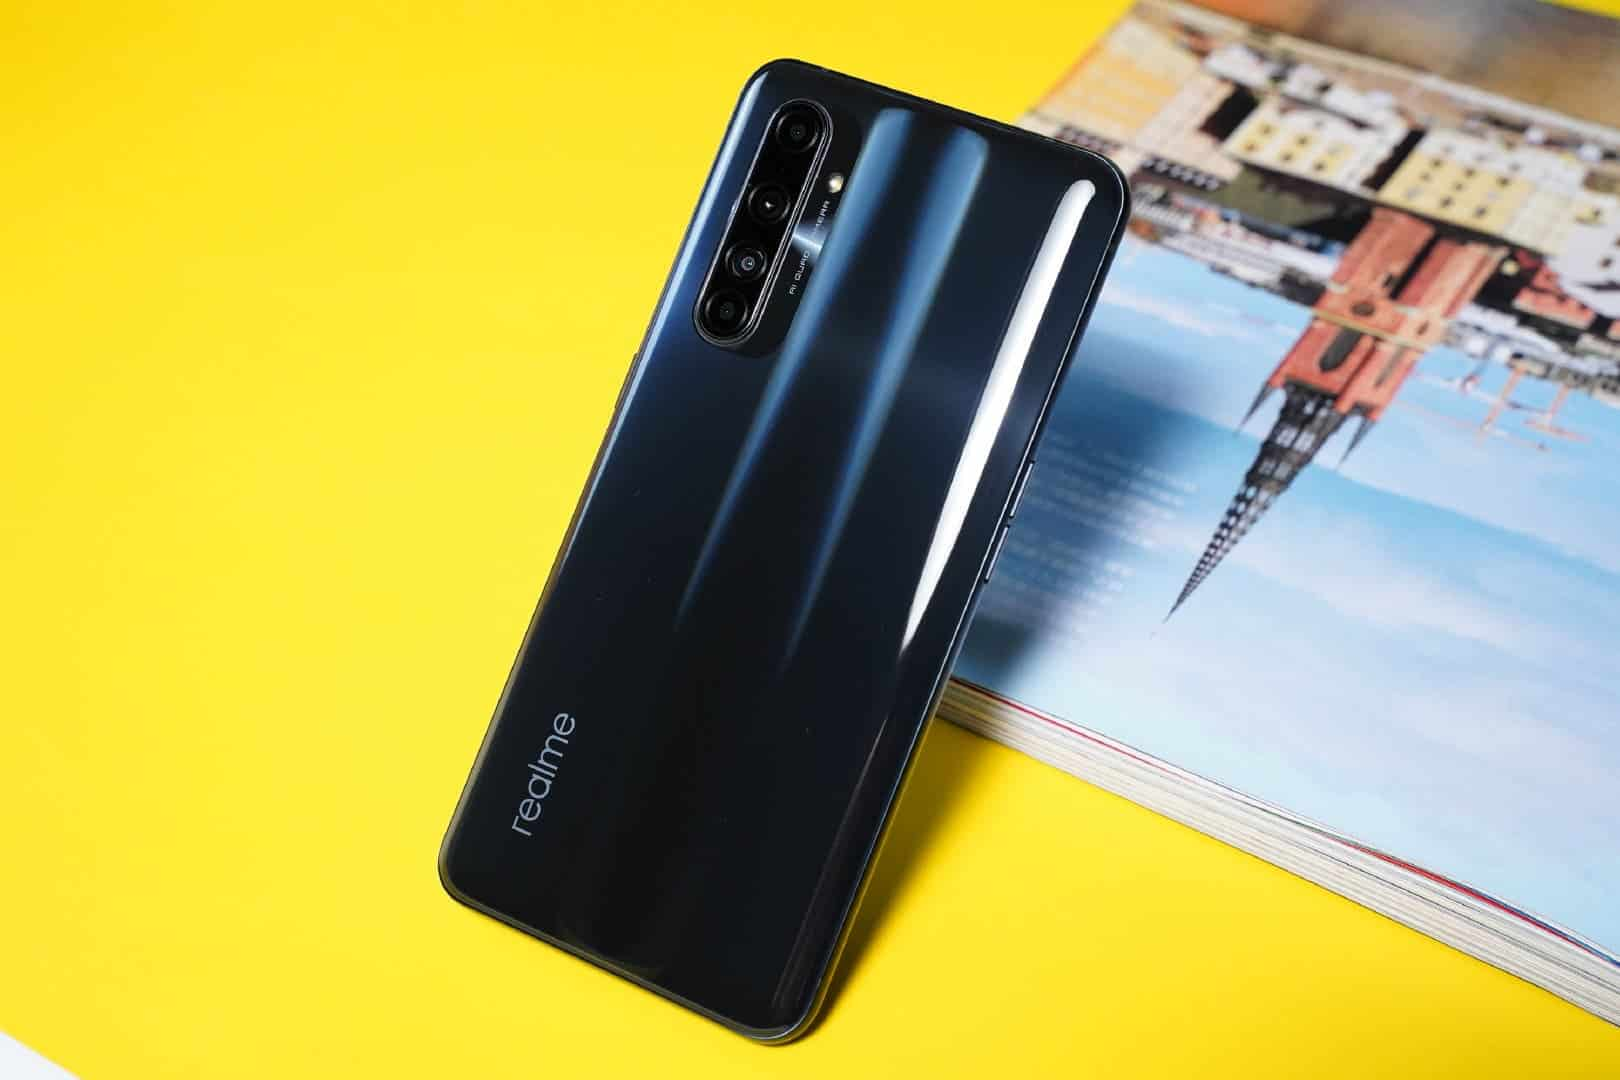 Realme to launch X3 SuperZoom today: Expected specs and other details